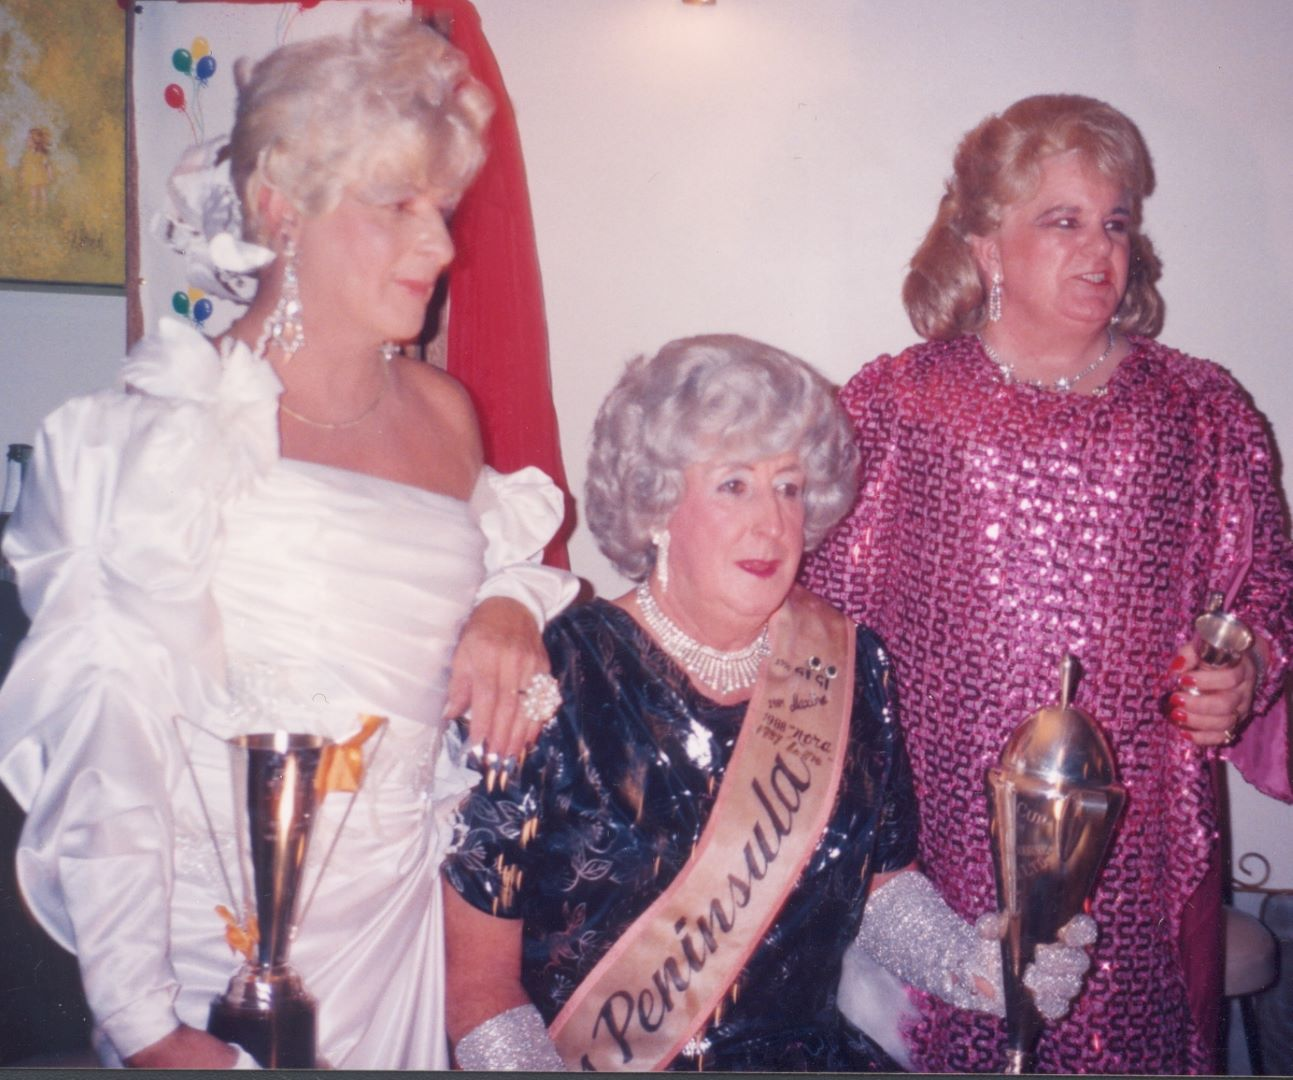 Maggie(?) seated in Miss Peninsula sash with Samantha and Honky Tonk, [1991], (Photo: unidentified photographer) BB-04d